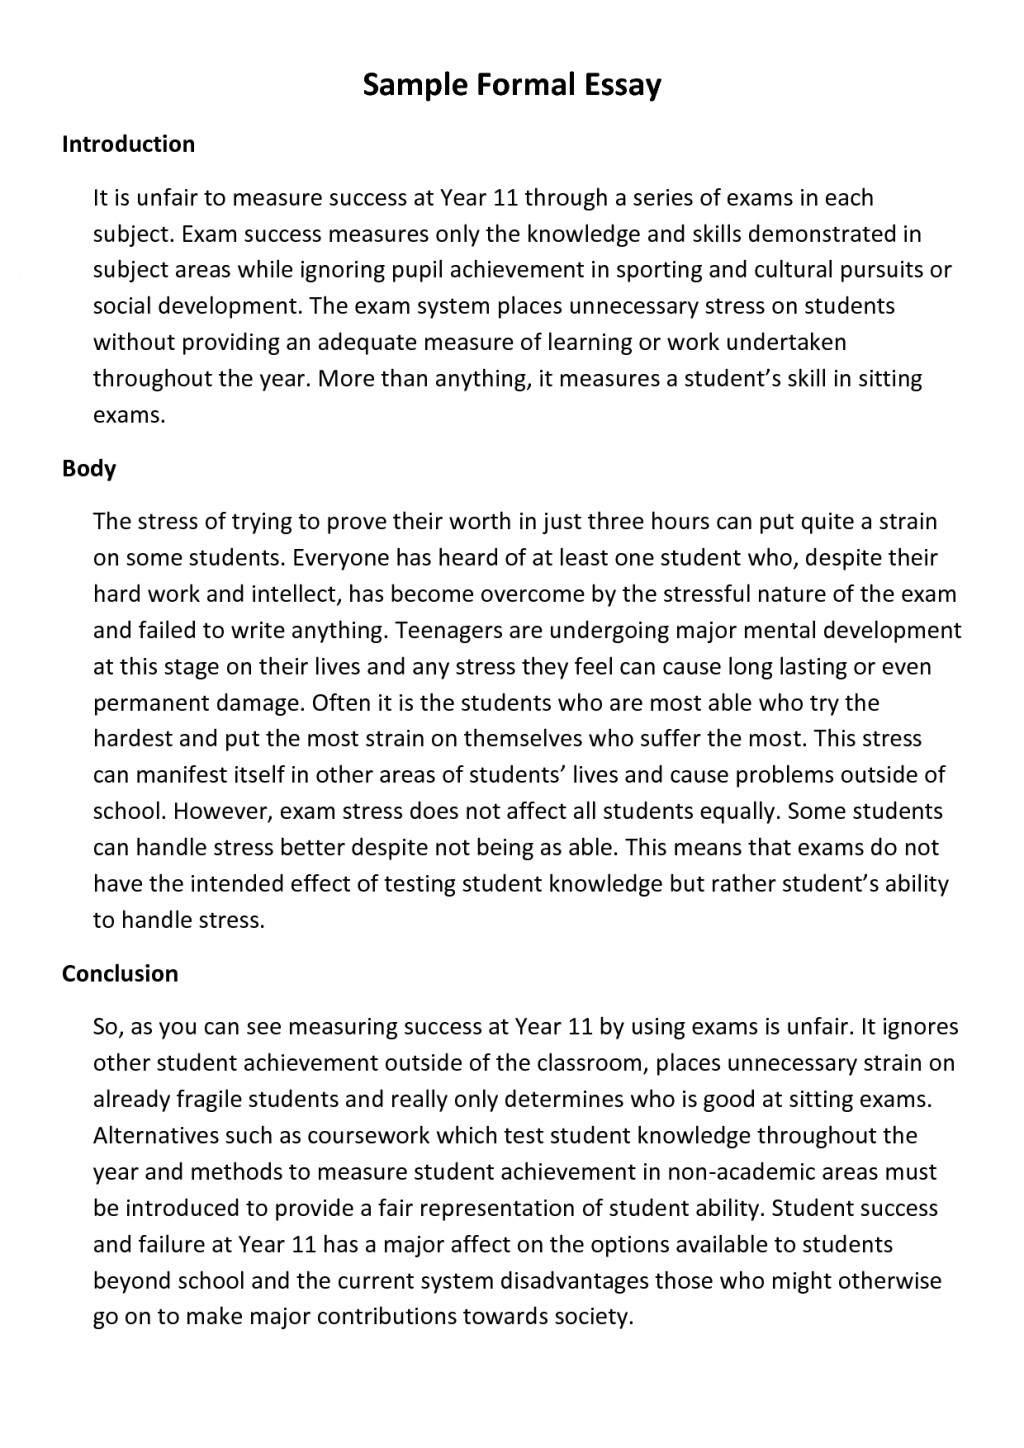 003 Formal Essay Format 326903 Fearsome College Letter Spm Academic Large